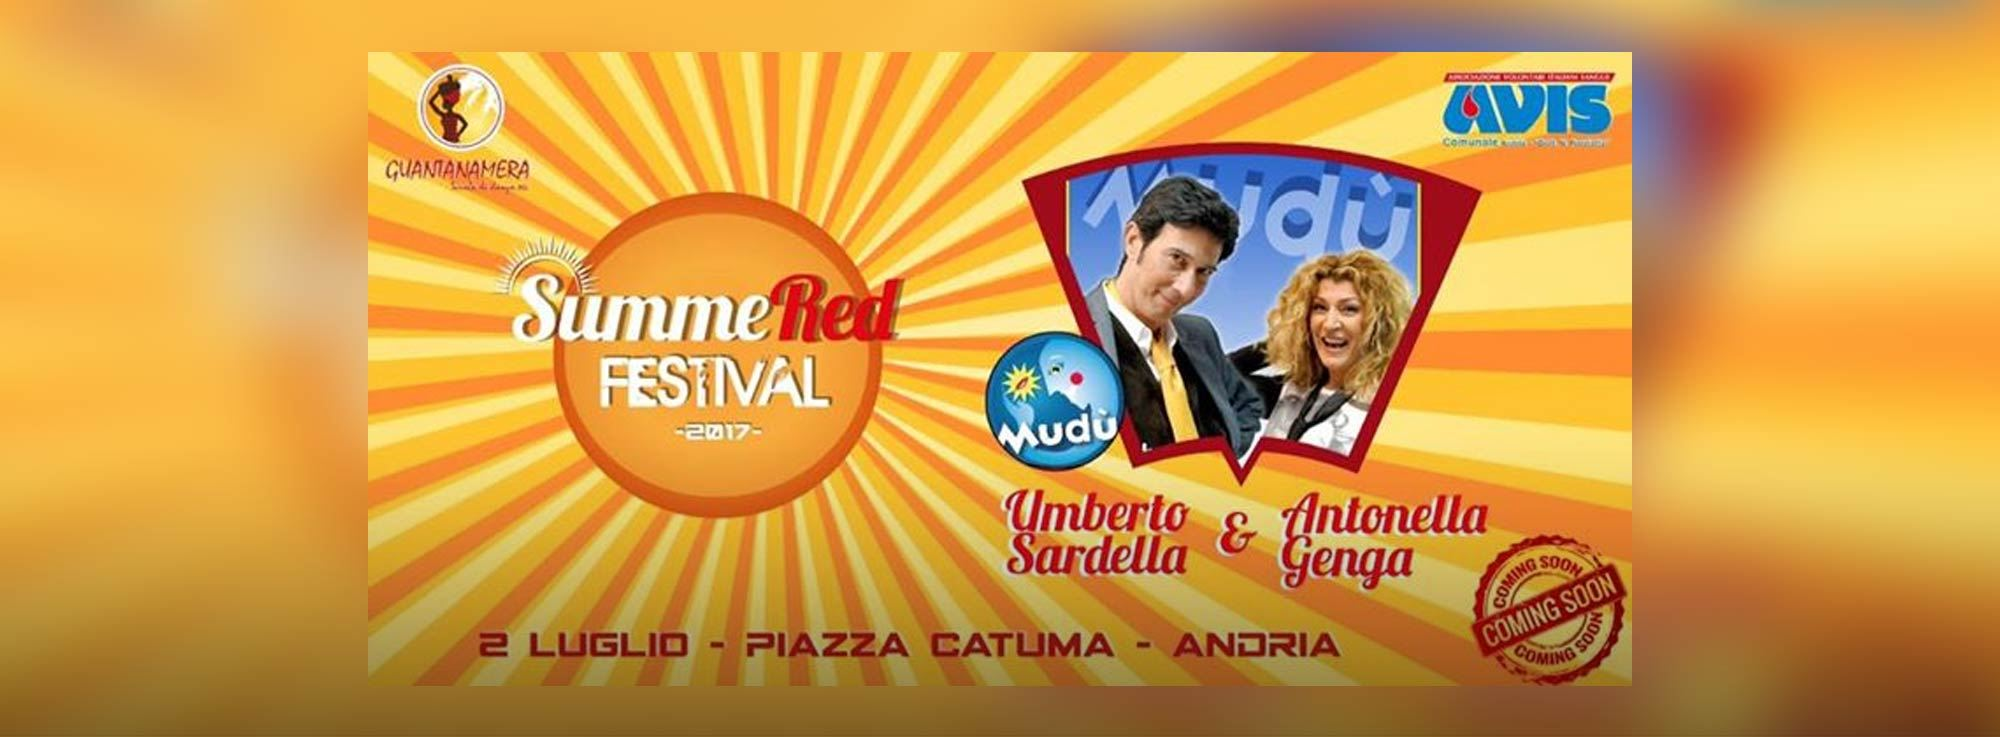 Andria: SummeRed Festival